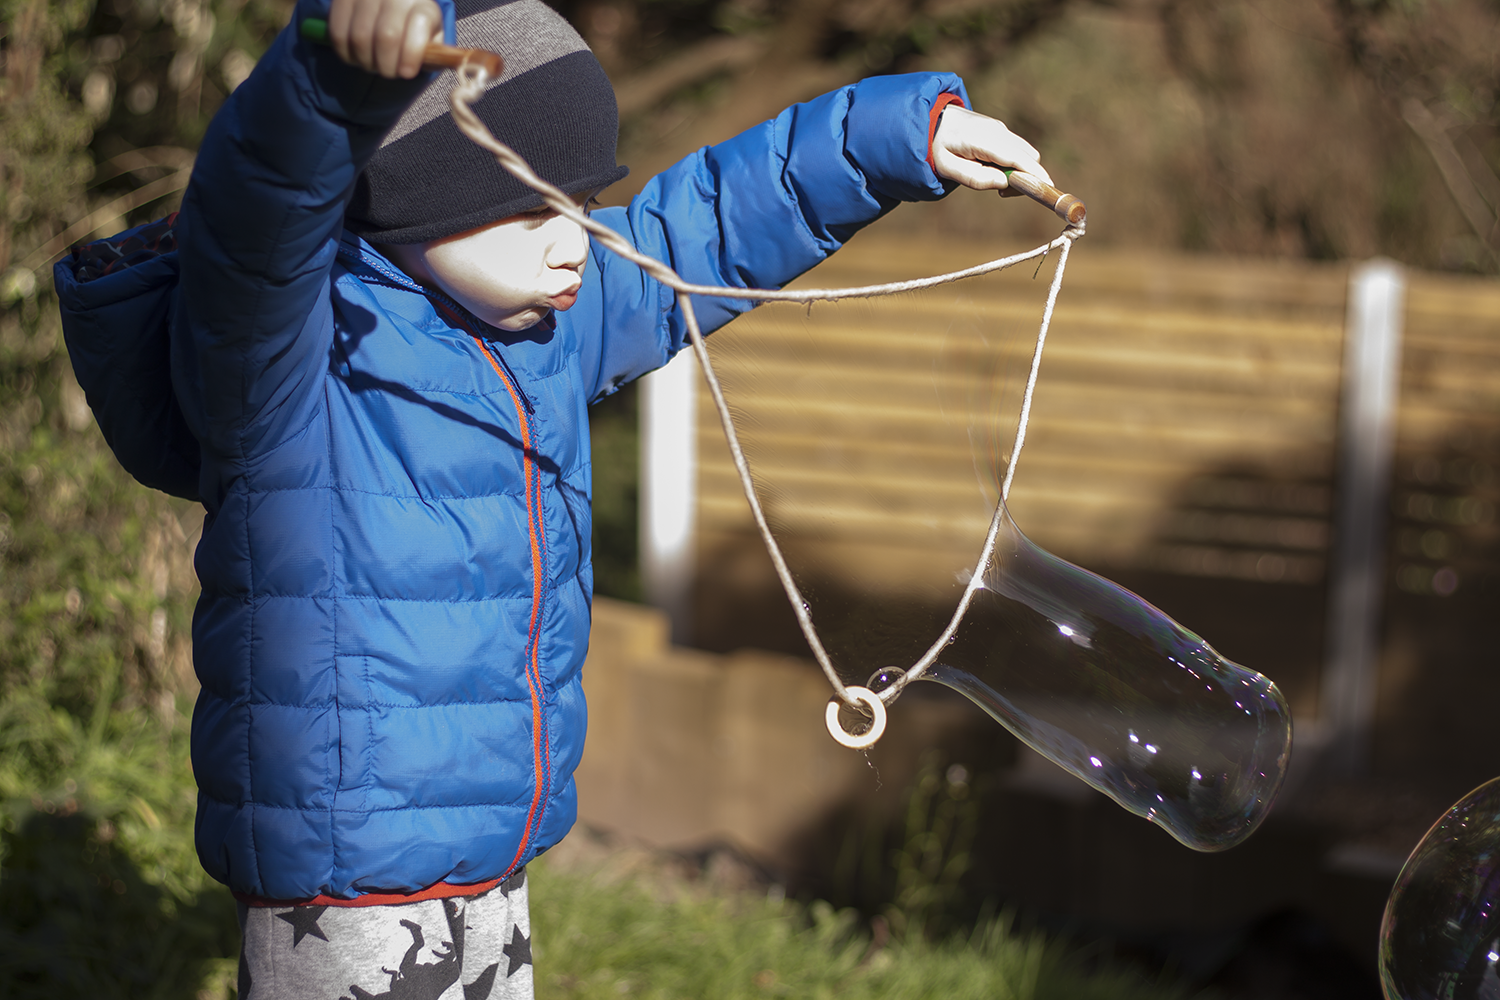 Gabe blowing bubbles in the garden